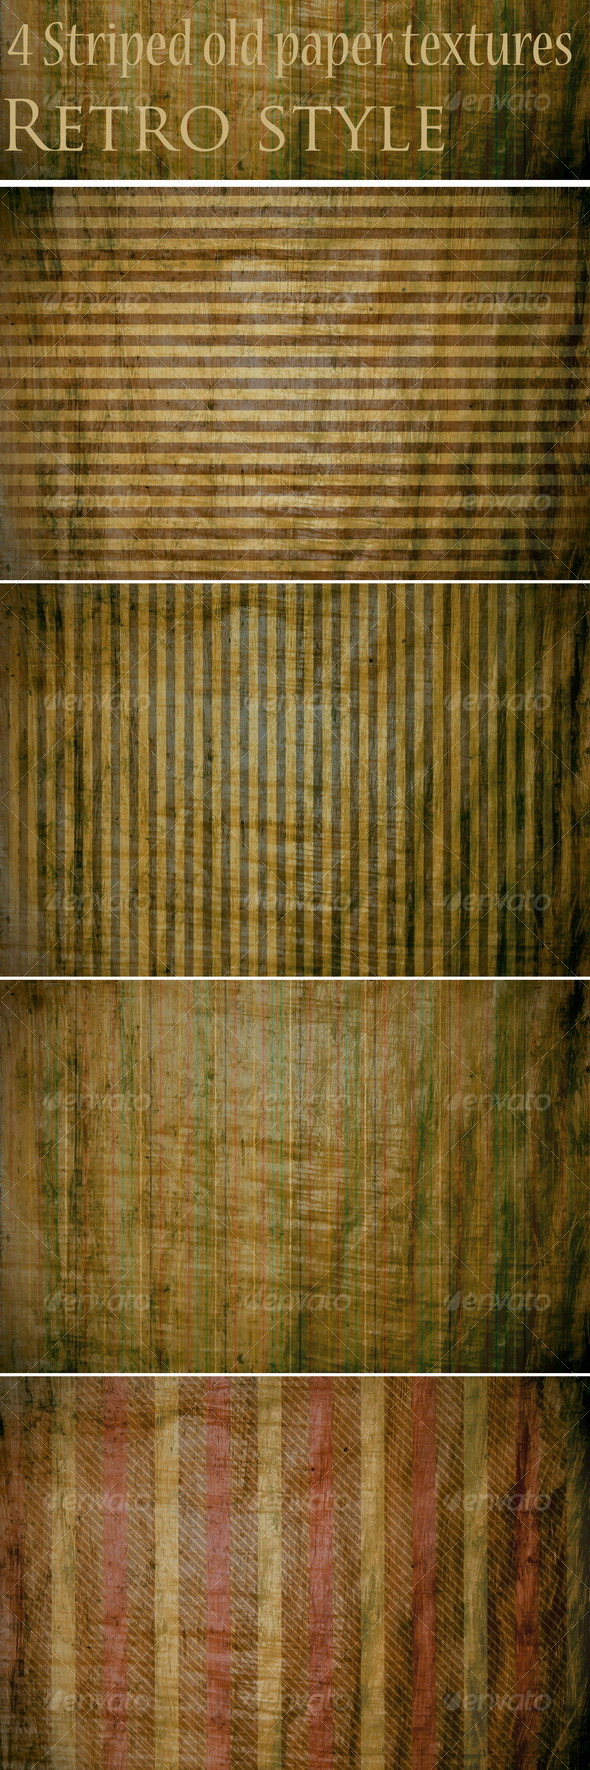 4 Striped old paper textures - Paper Textures